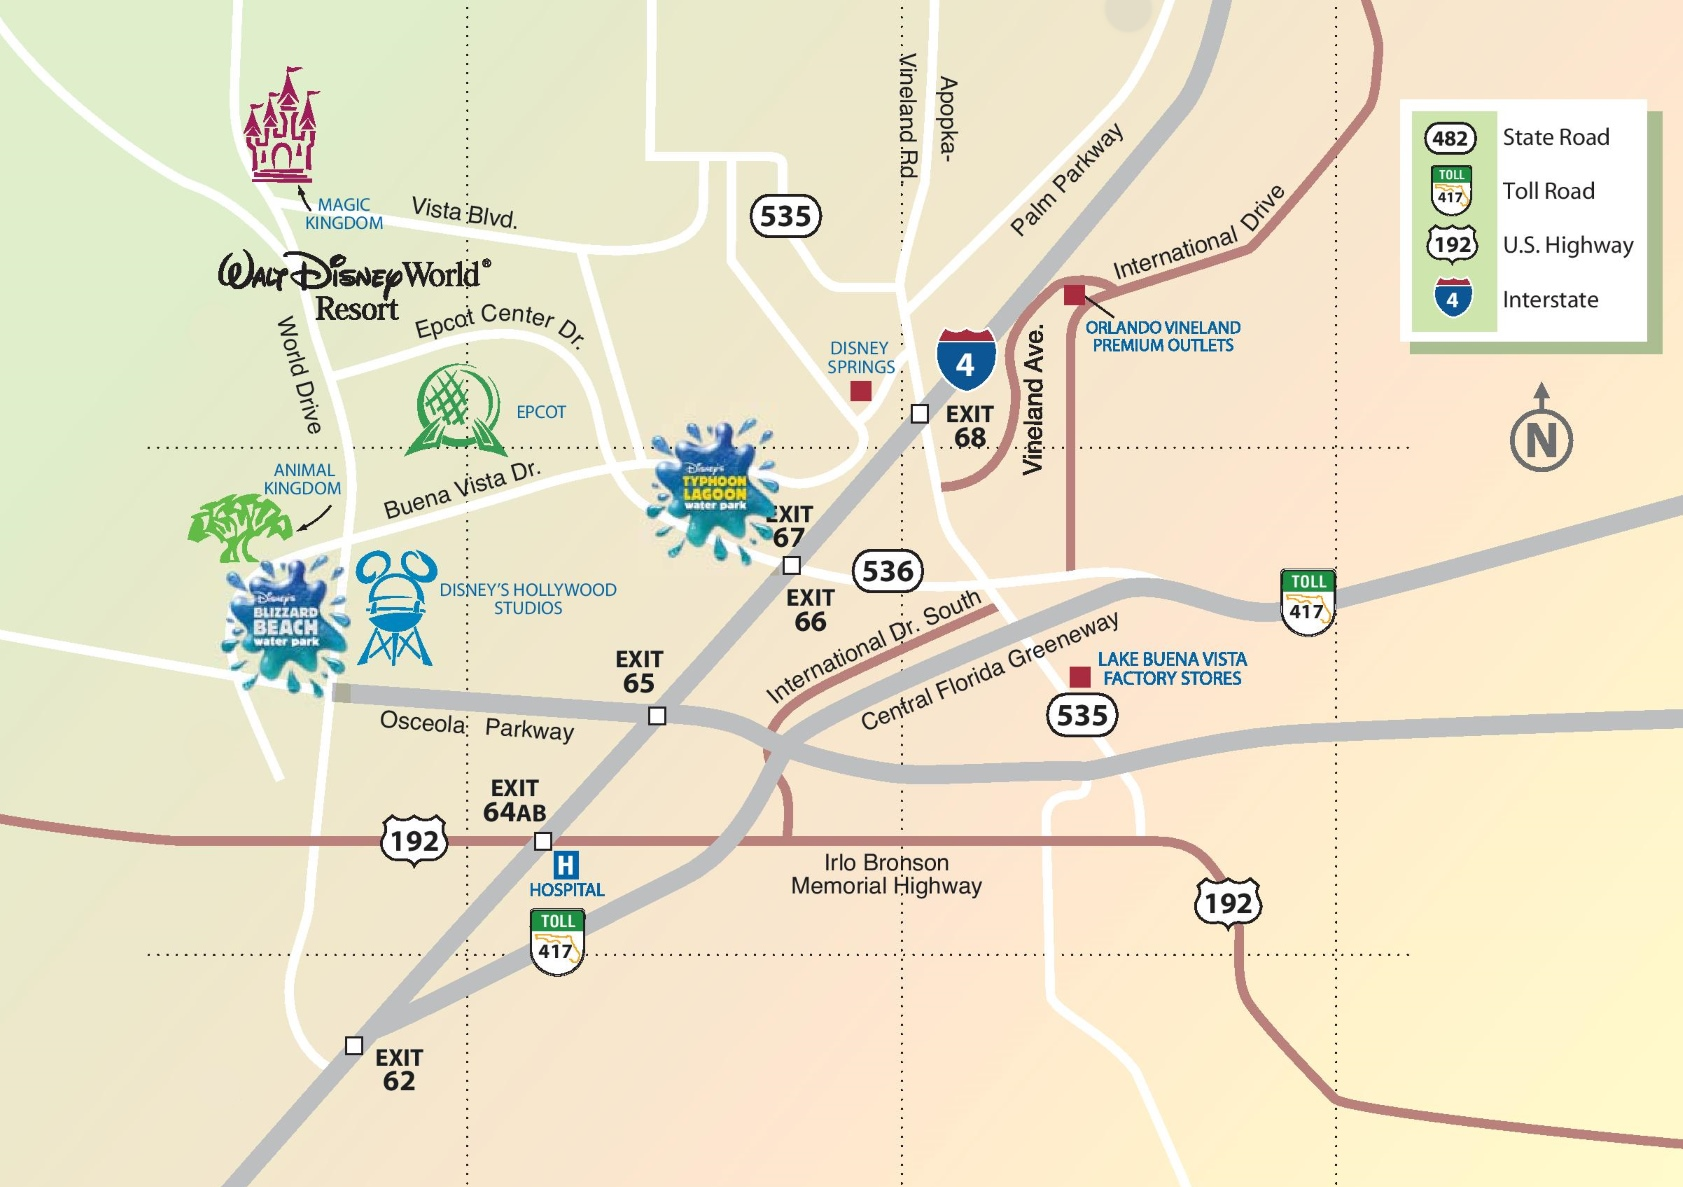 map of lake buena vista area Lake Buena Vista Area Map map of lake buena vista area